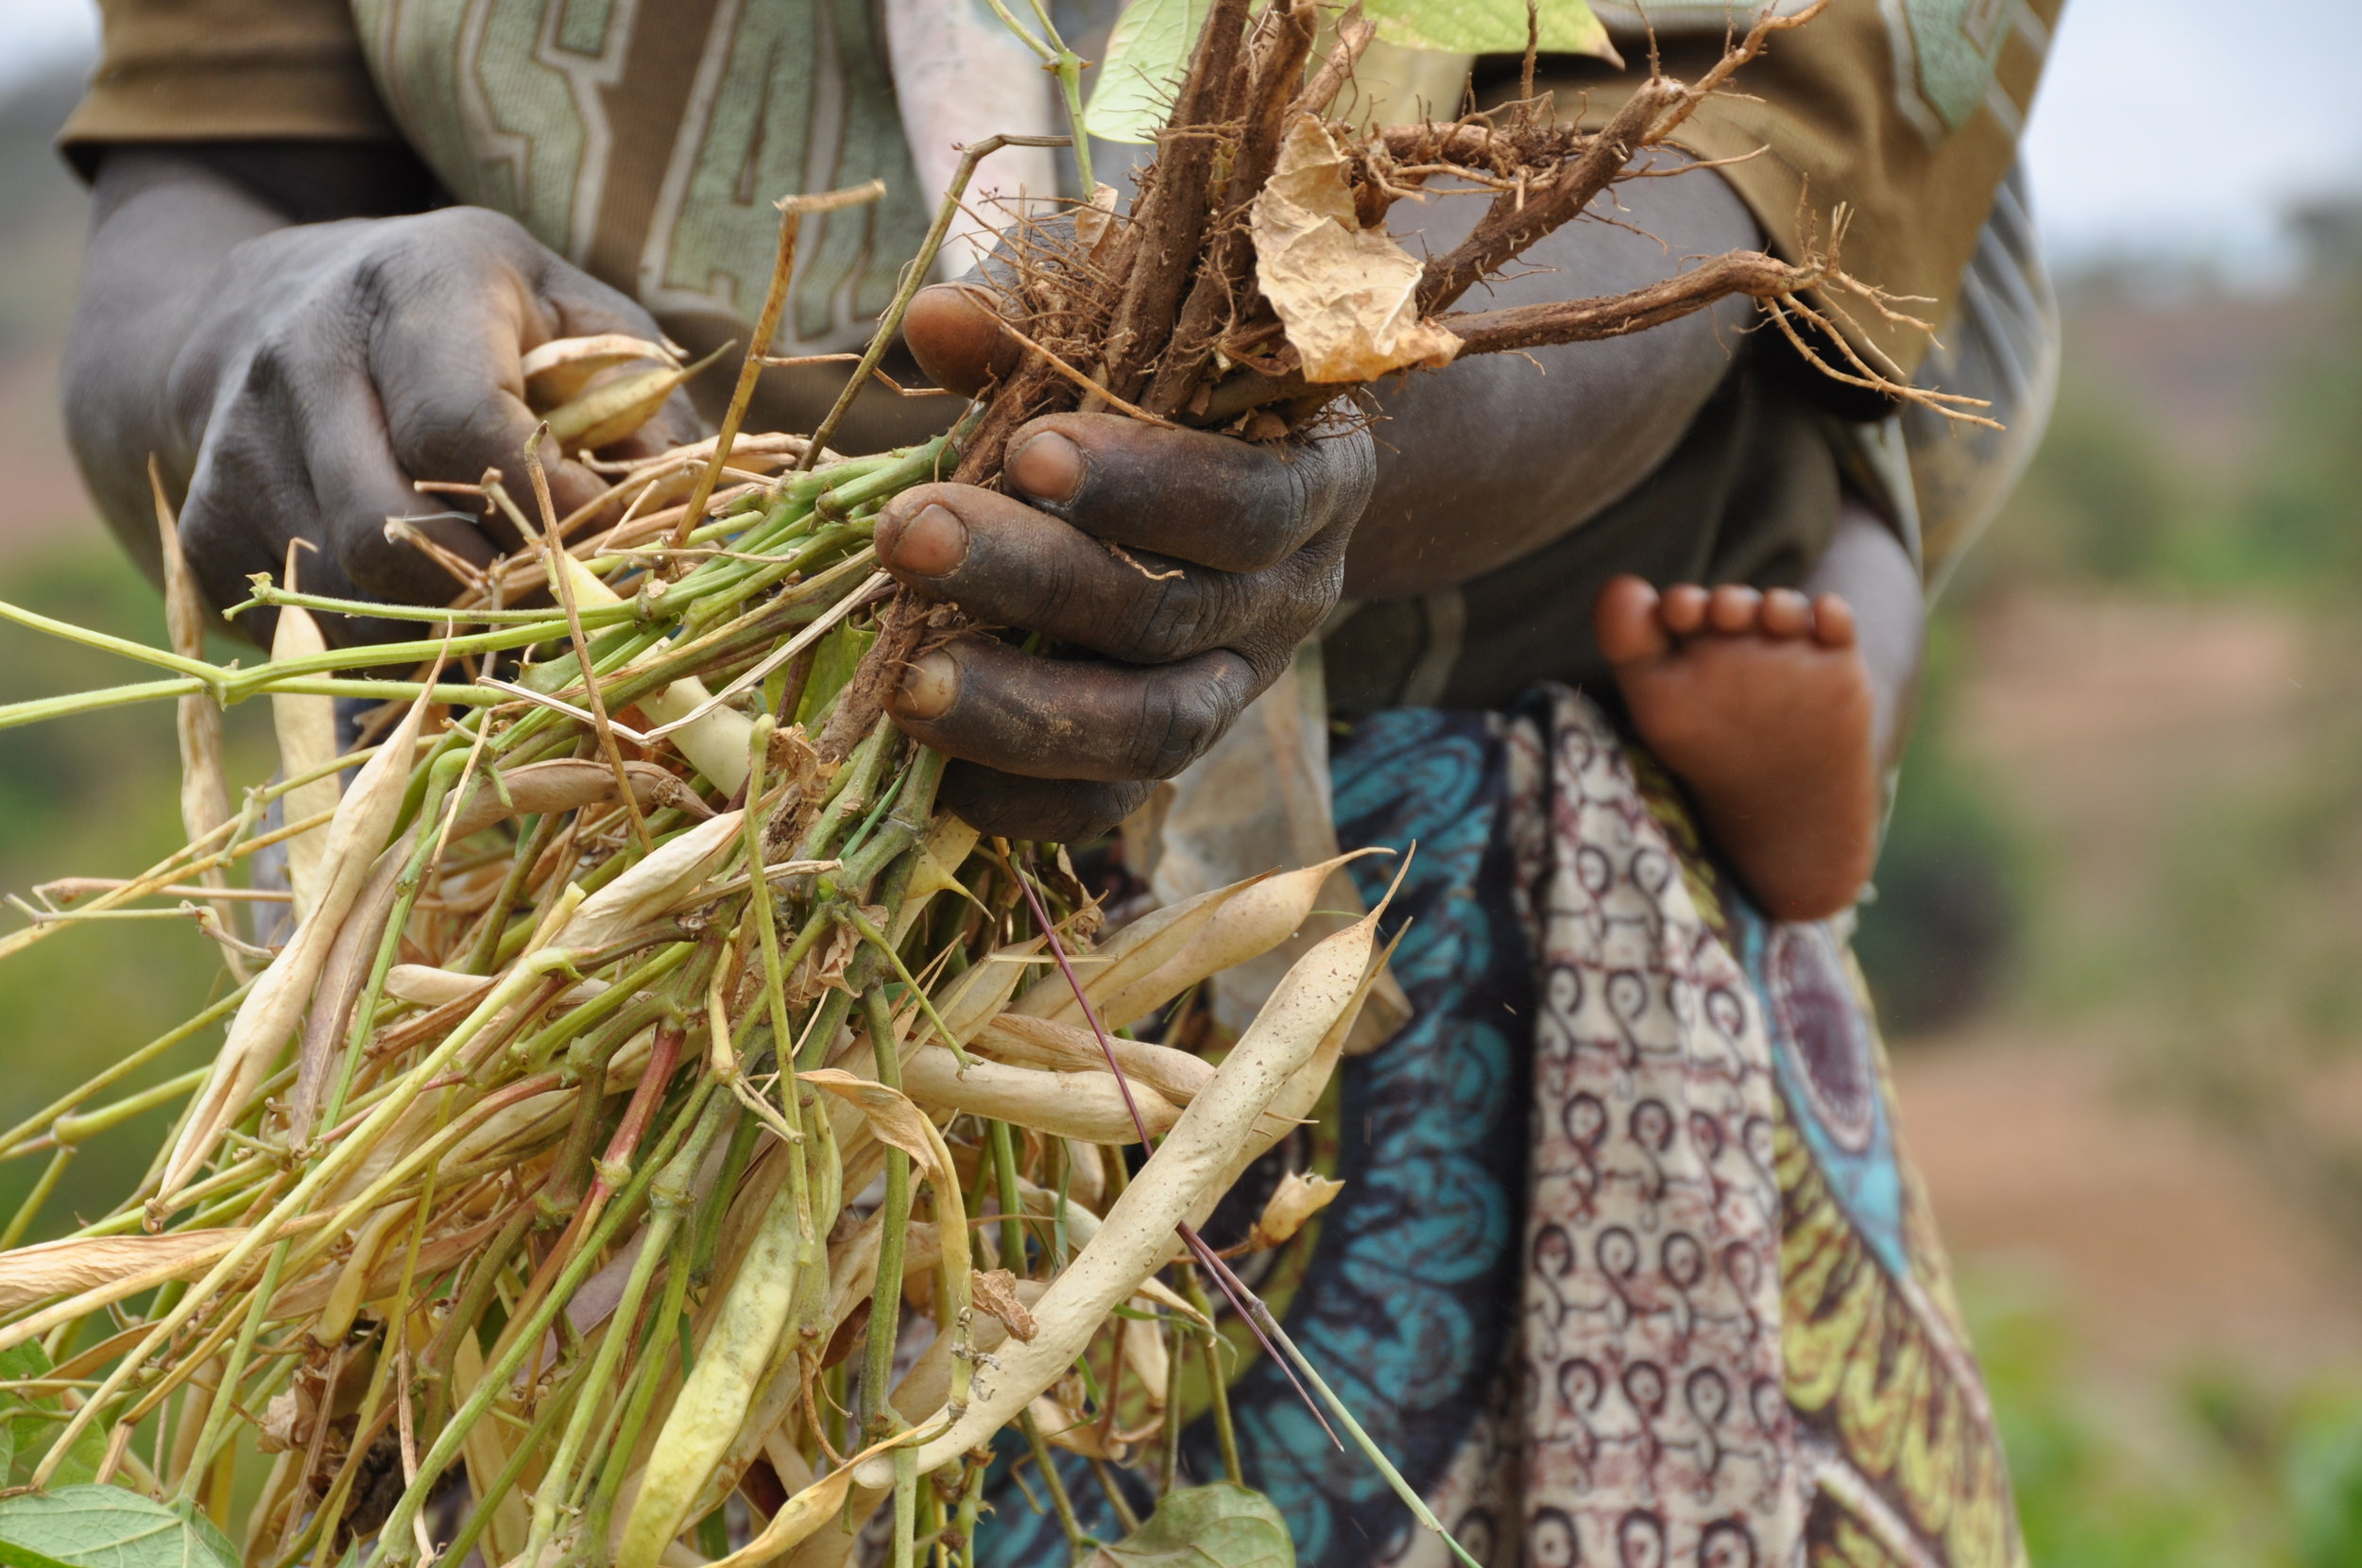 Woman farmer with peas, food, livelihoods, agriculture, with baby foot (1).JPG